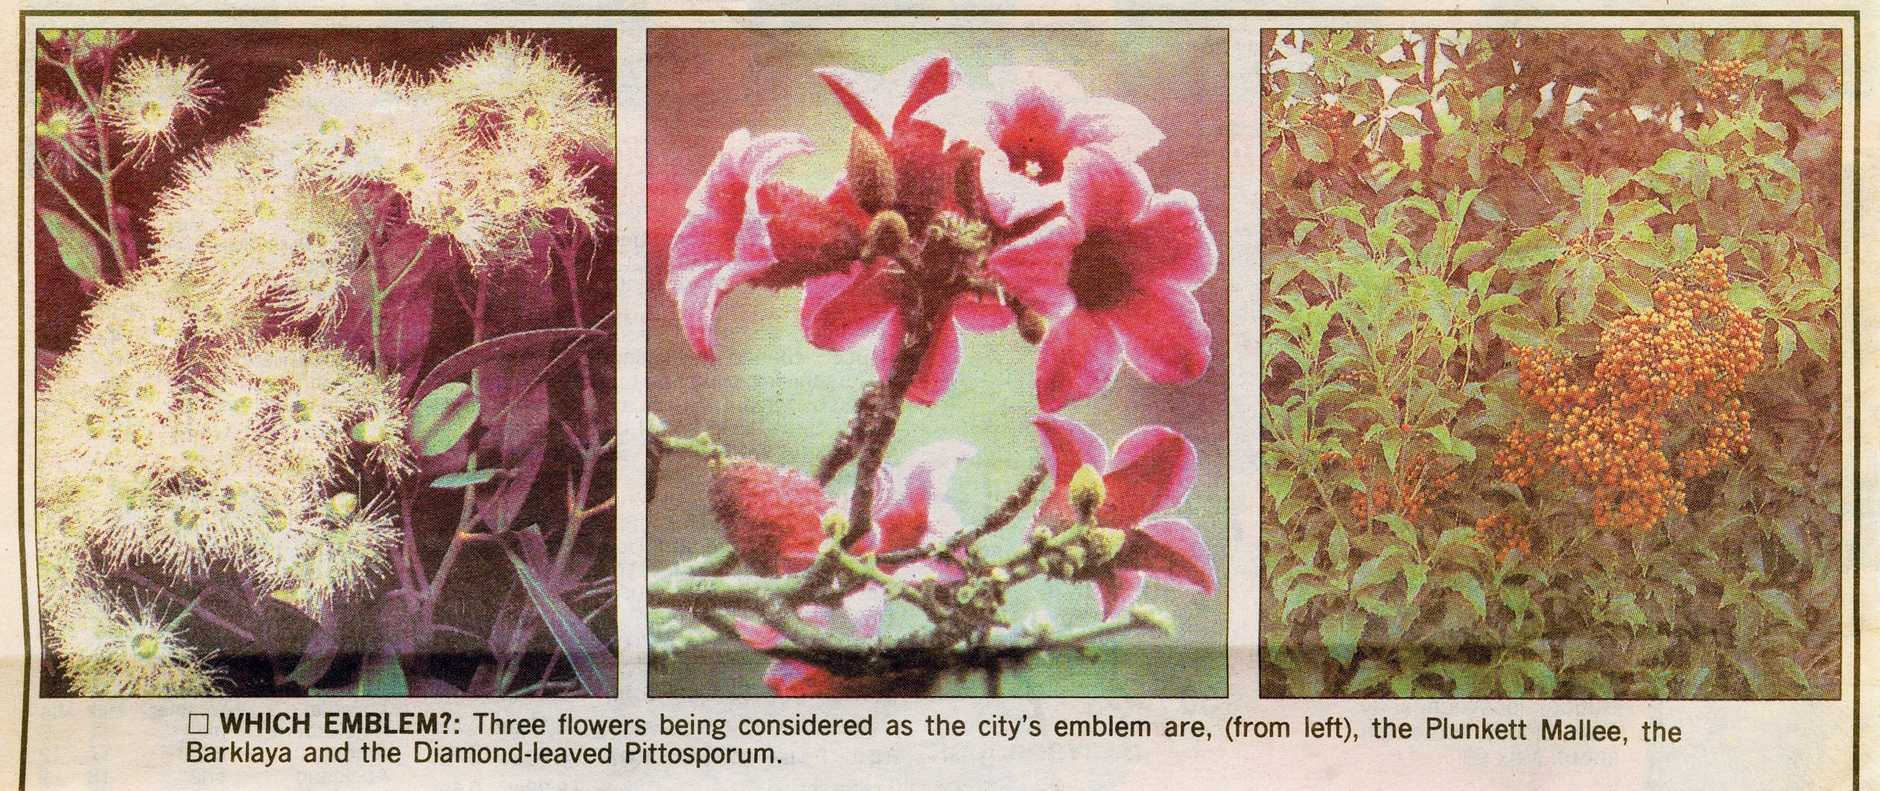 FLORAL HOMAGE: The three flowers being considered as the City emblem in 1996 - The Plunkett Mallee, the Barklaya and the Diamond leaved Pittosporum.